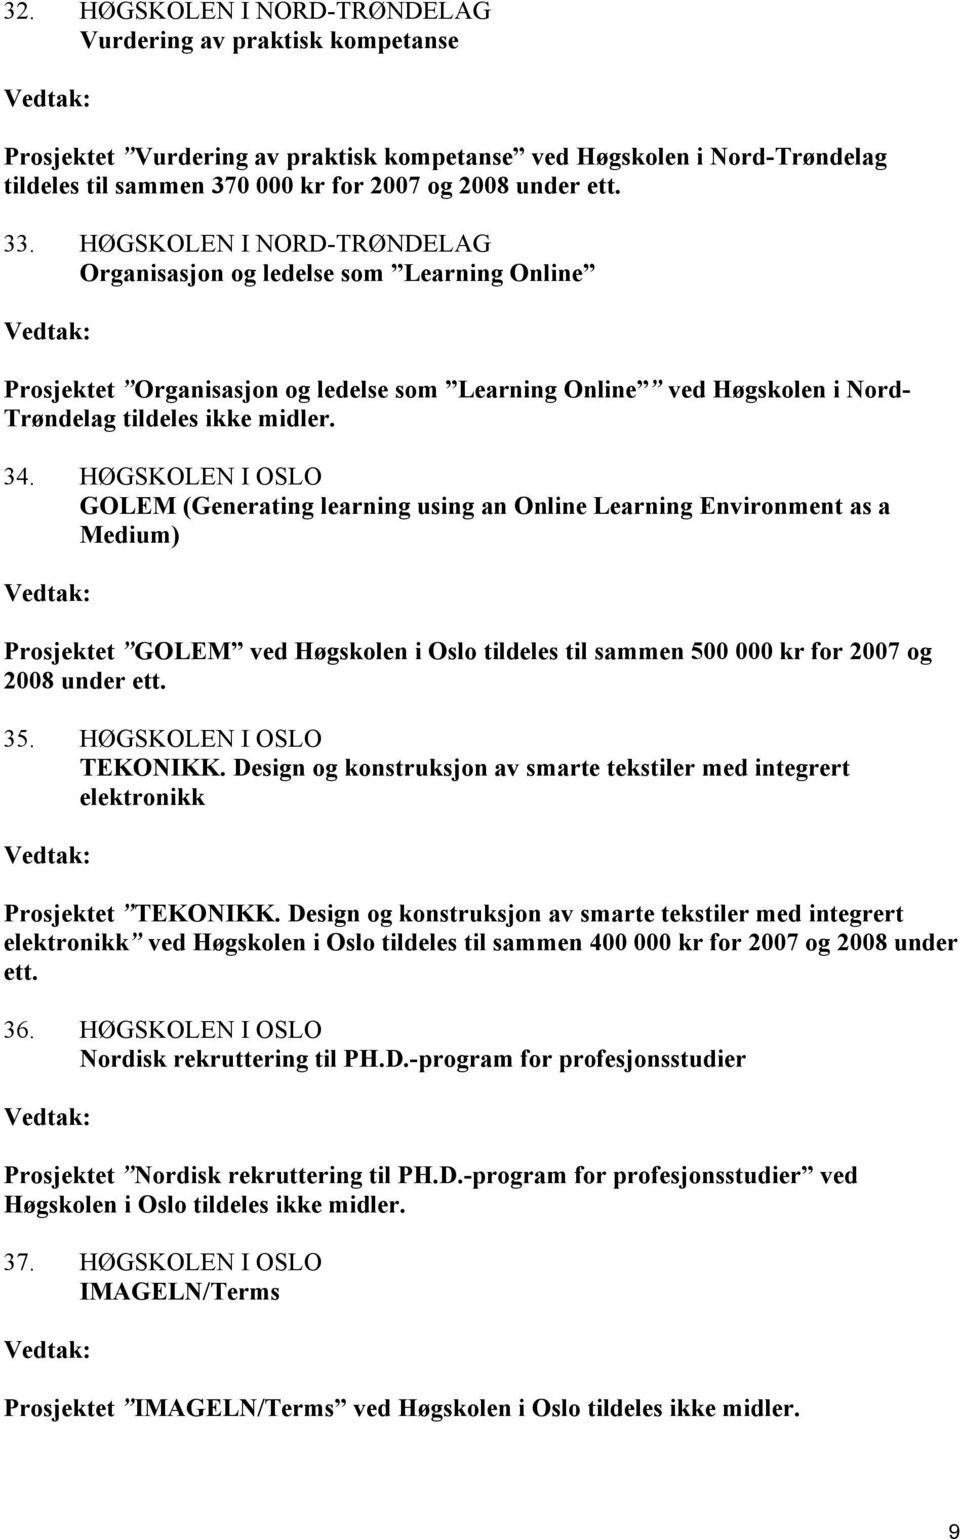 HØGSKOLEN I OSLO GOLEM (Generating learning using an Online Learning Environment as a Medium) Prosjektet GOLEM ved Høgskolen i Oslo tildeles til sammen 500 000 kr for 2007 og 2008 under ett. 35.